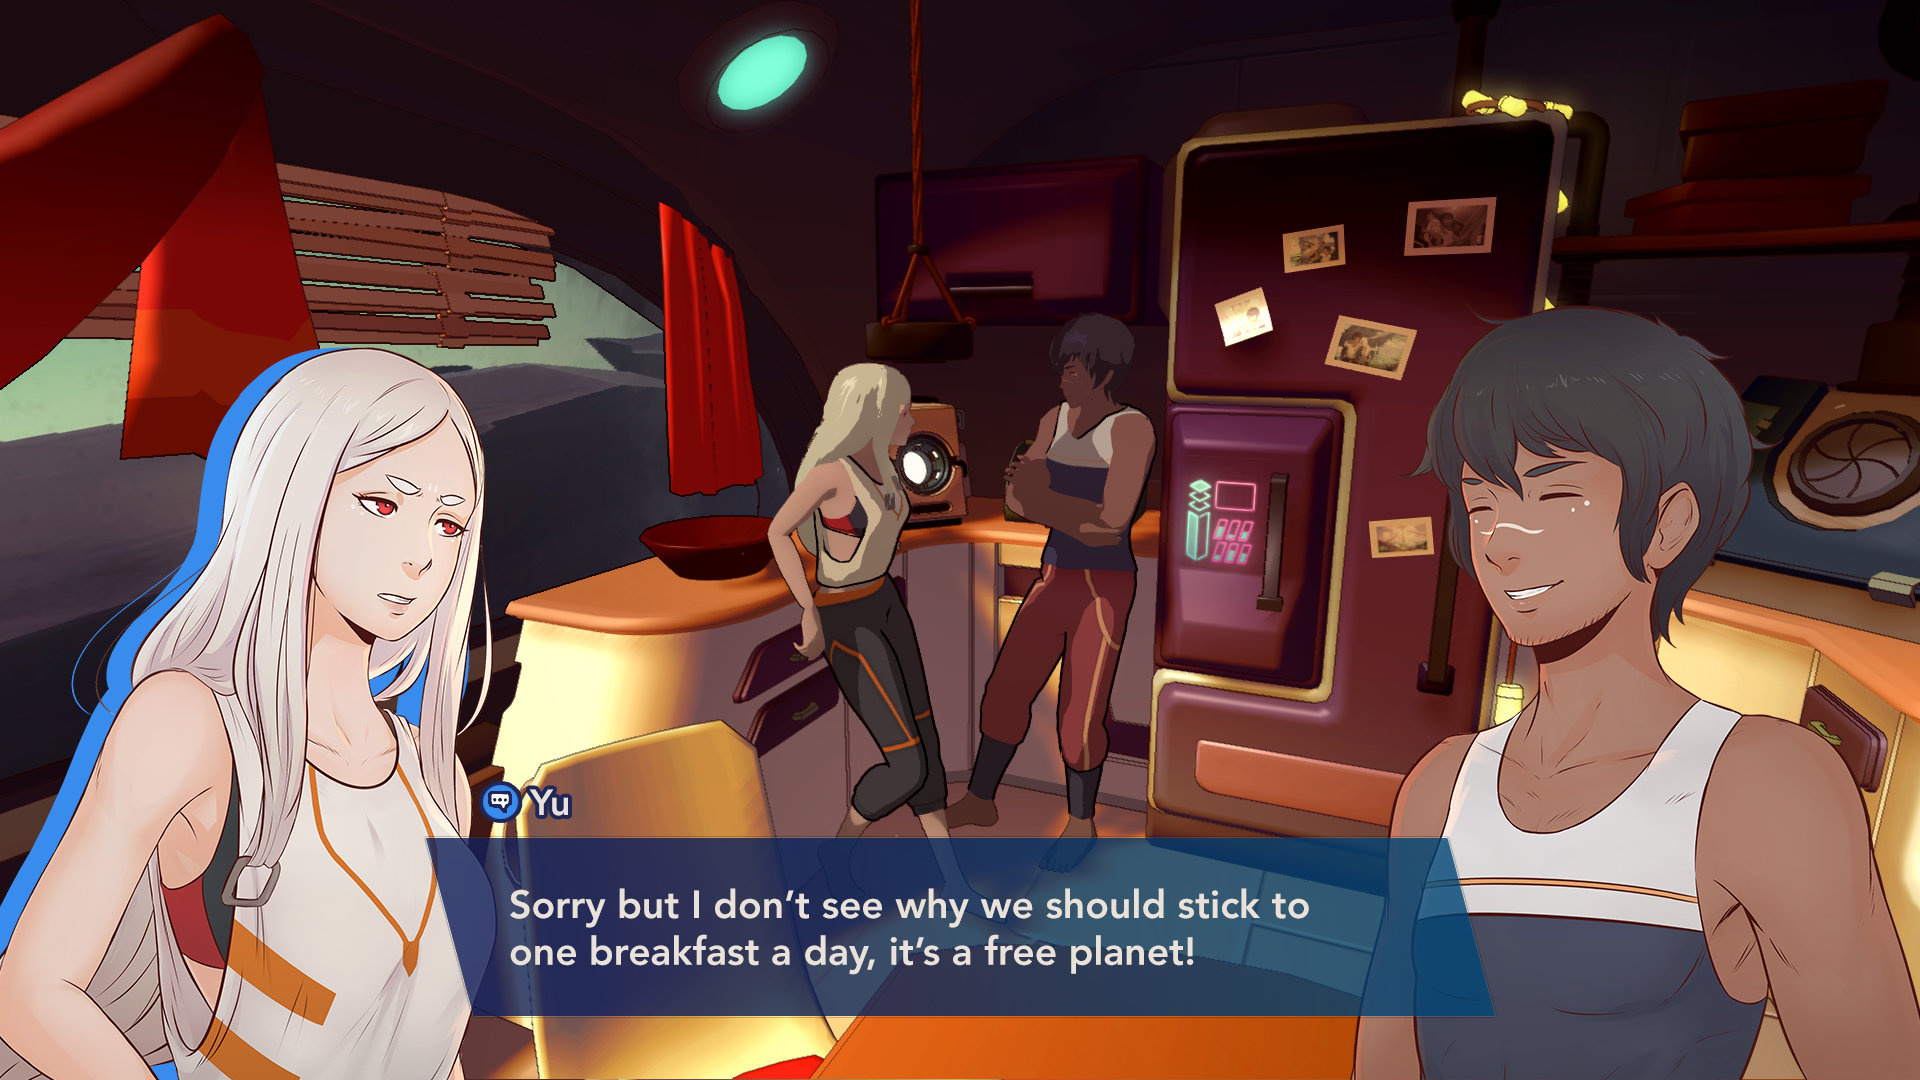 Yu and Kay talk about breakfast and food in their ship in Haven.